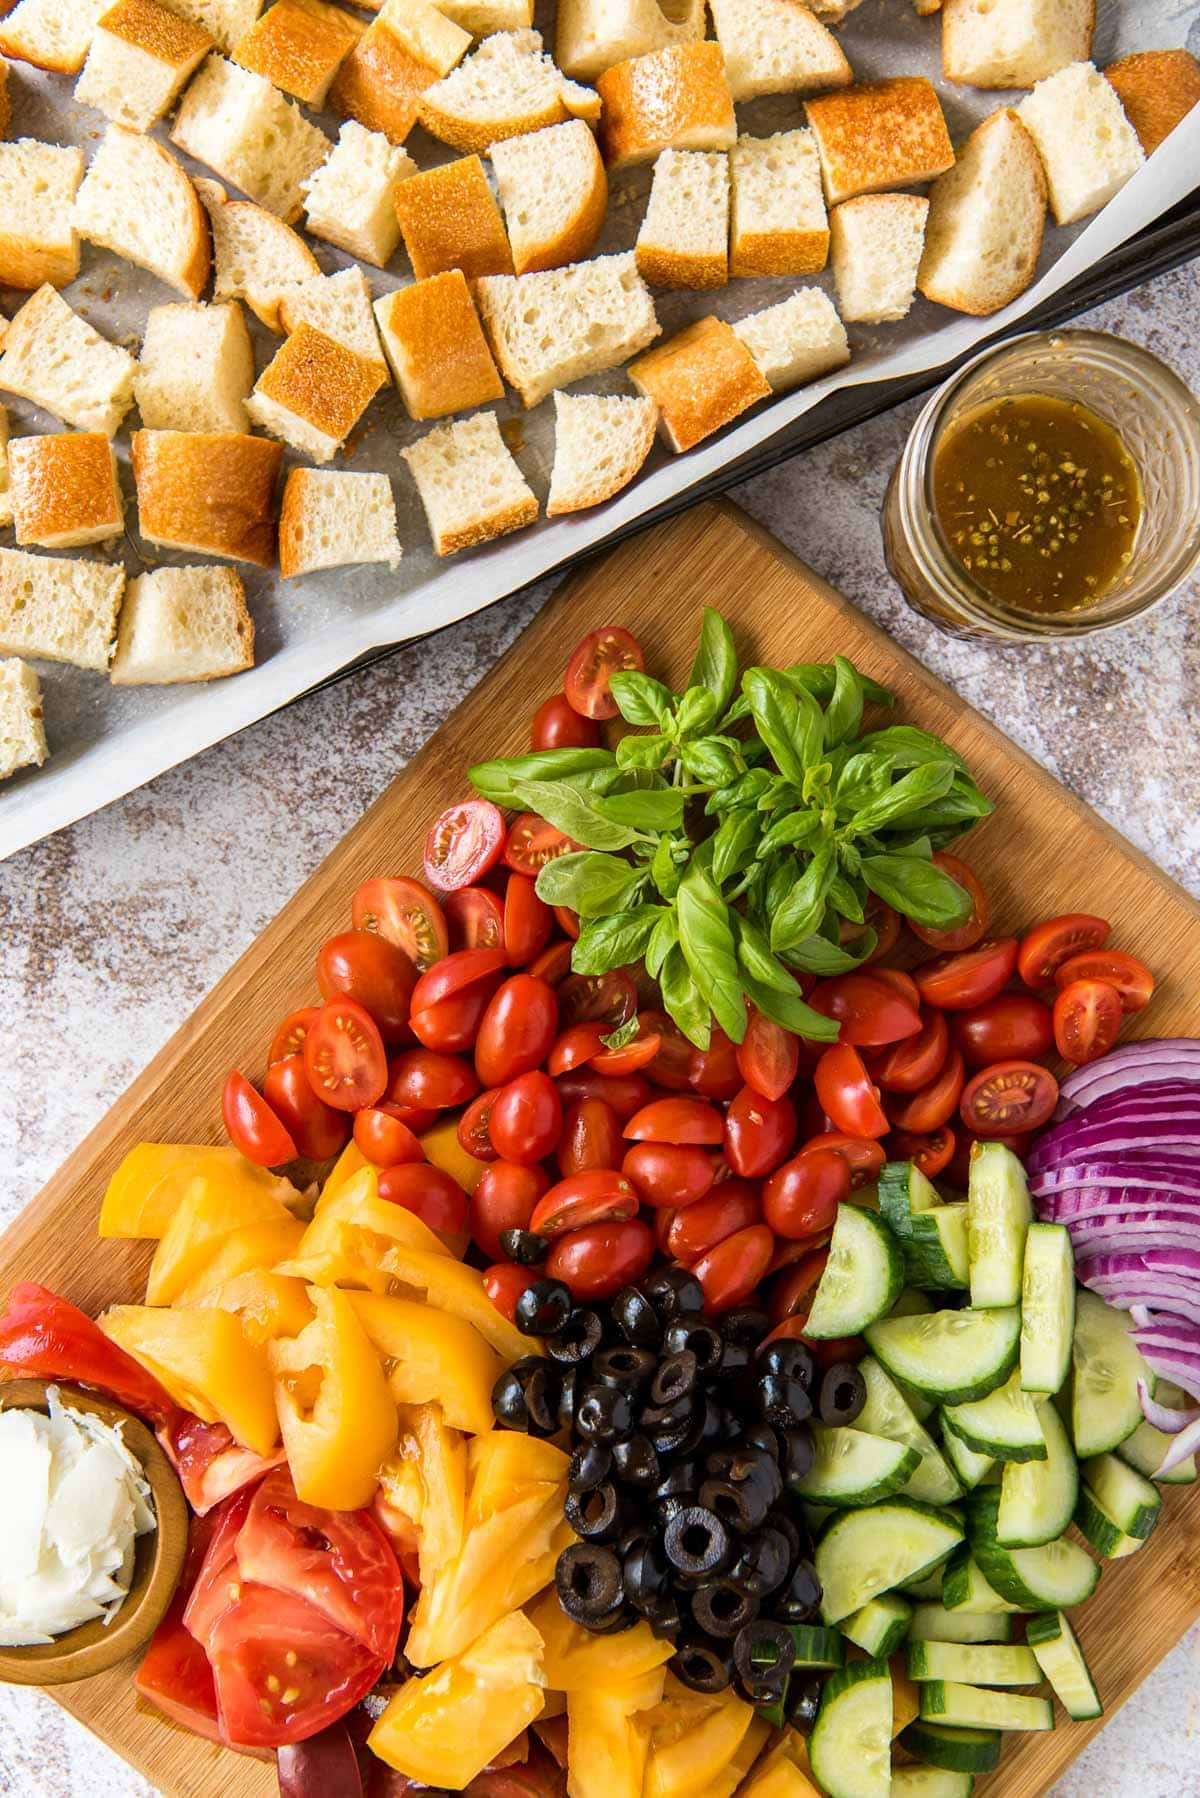 wood cutting board with tomatoes, peppers, olives, cucumbers, basil and bread